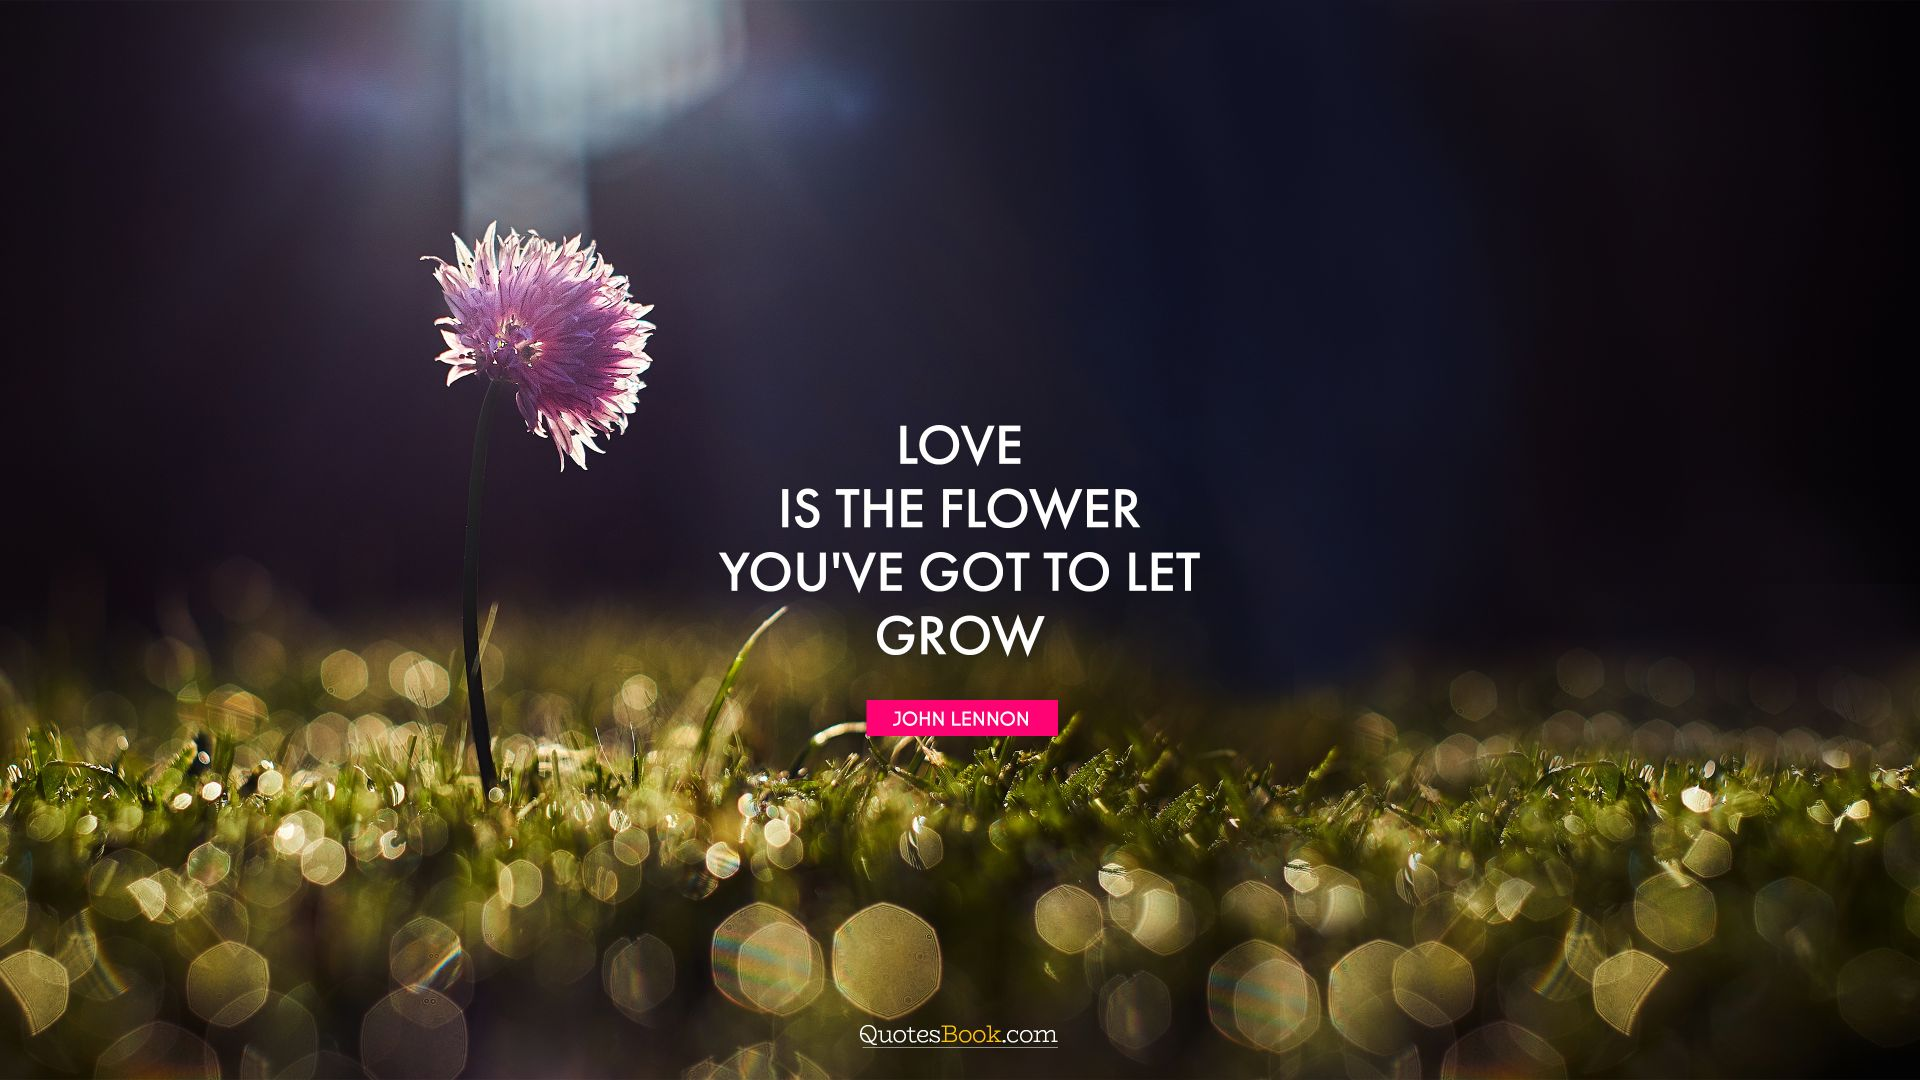 Love is the flower you've got to let grow. - Quote by John Lennon